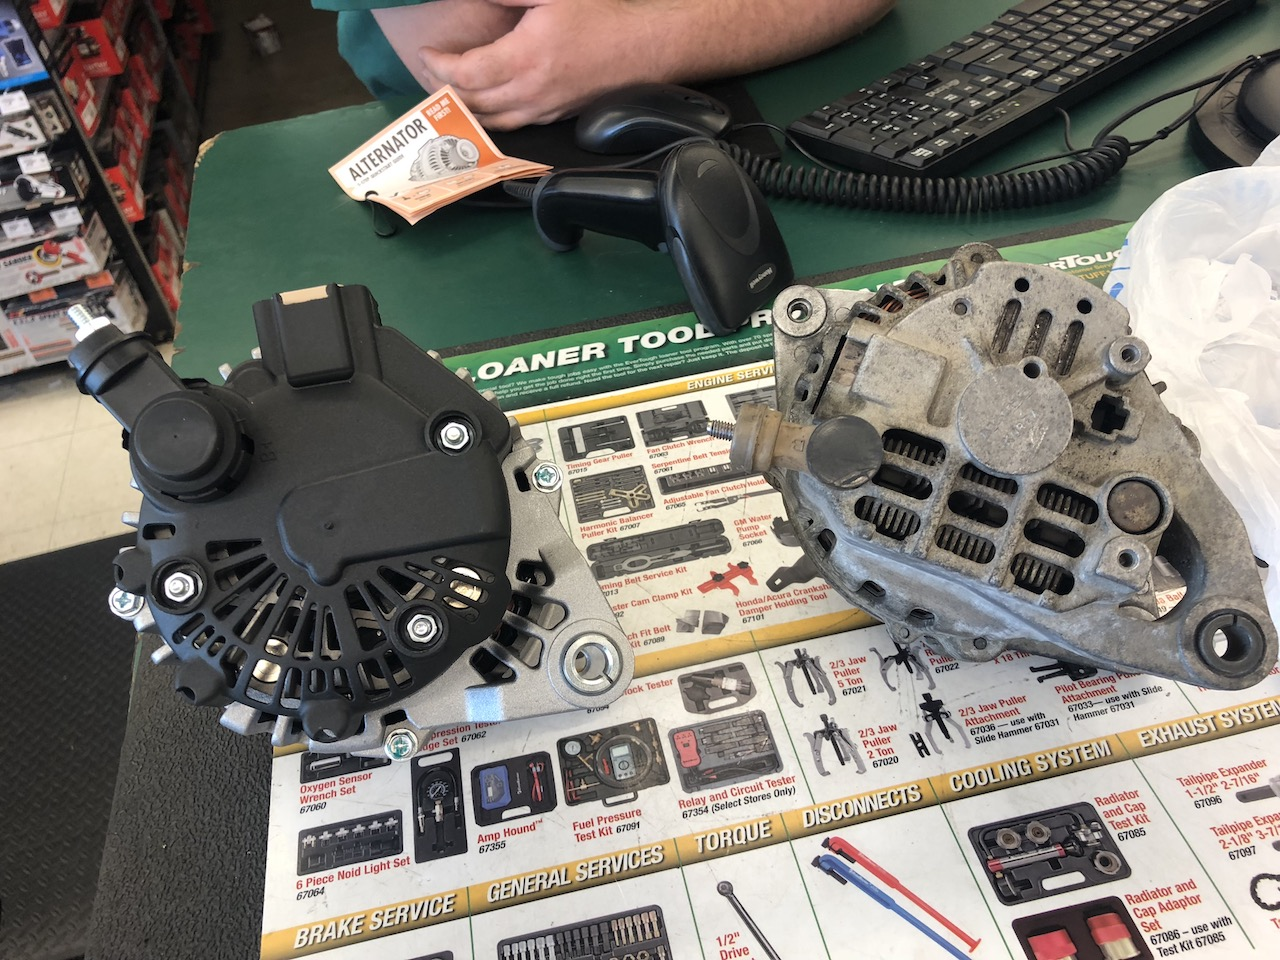 High Output Alternator Swap From Sephia To Sportage Kia Forum Amp Wiring Diagram Click Image For Larger Version Name Backside Comparison Views 91 Size